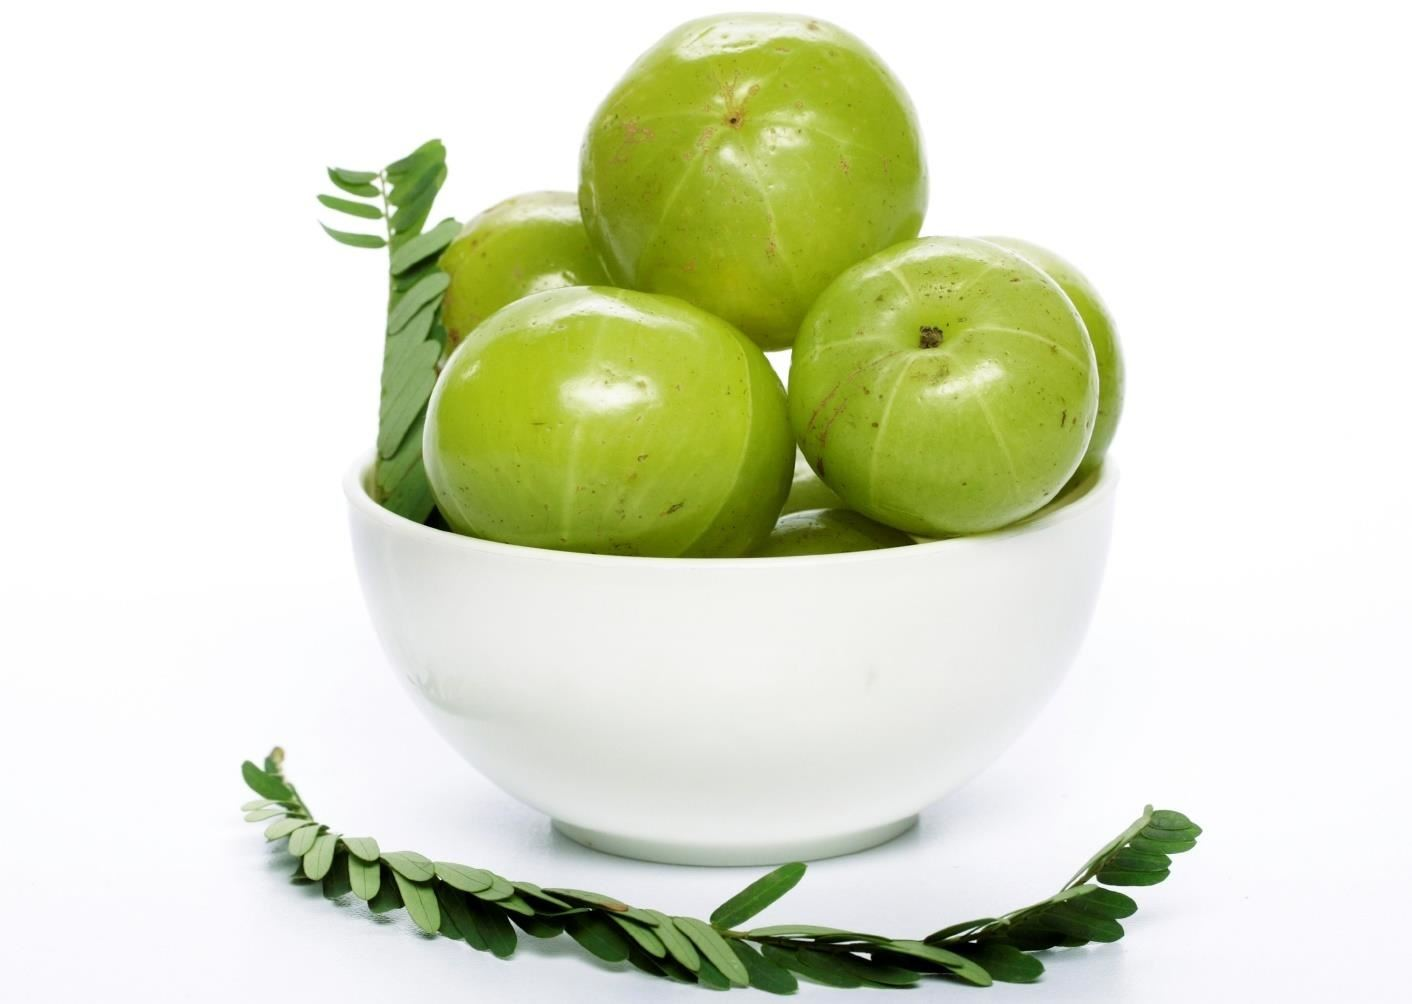 How to Take Benefits of Amla